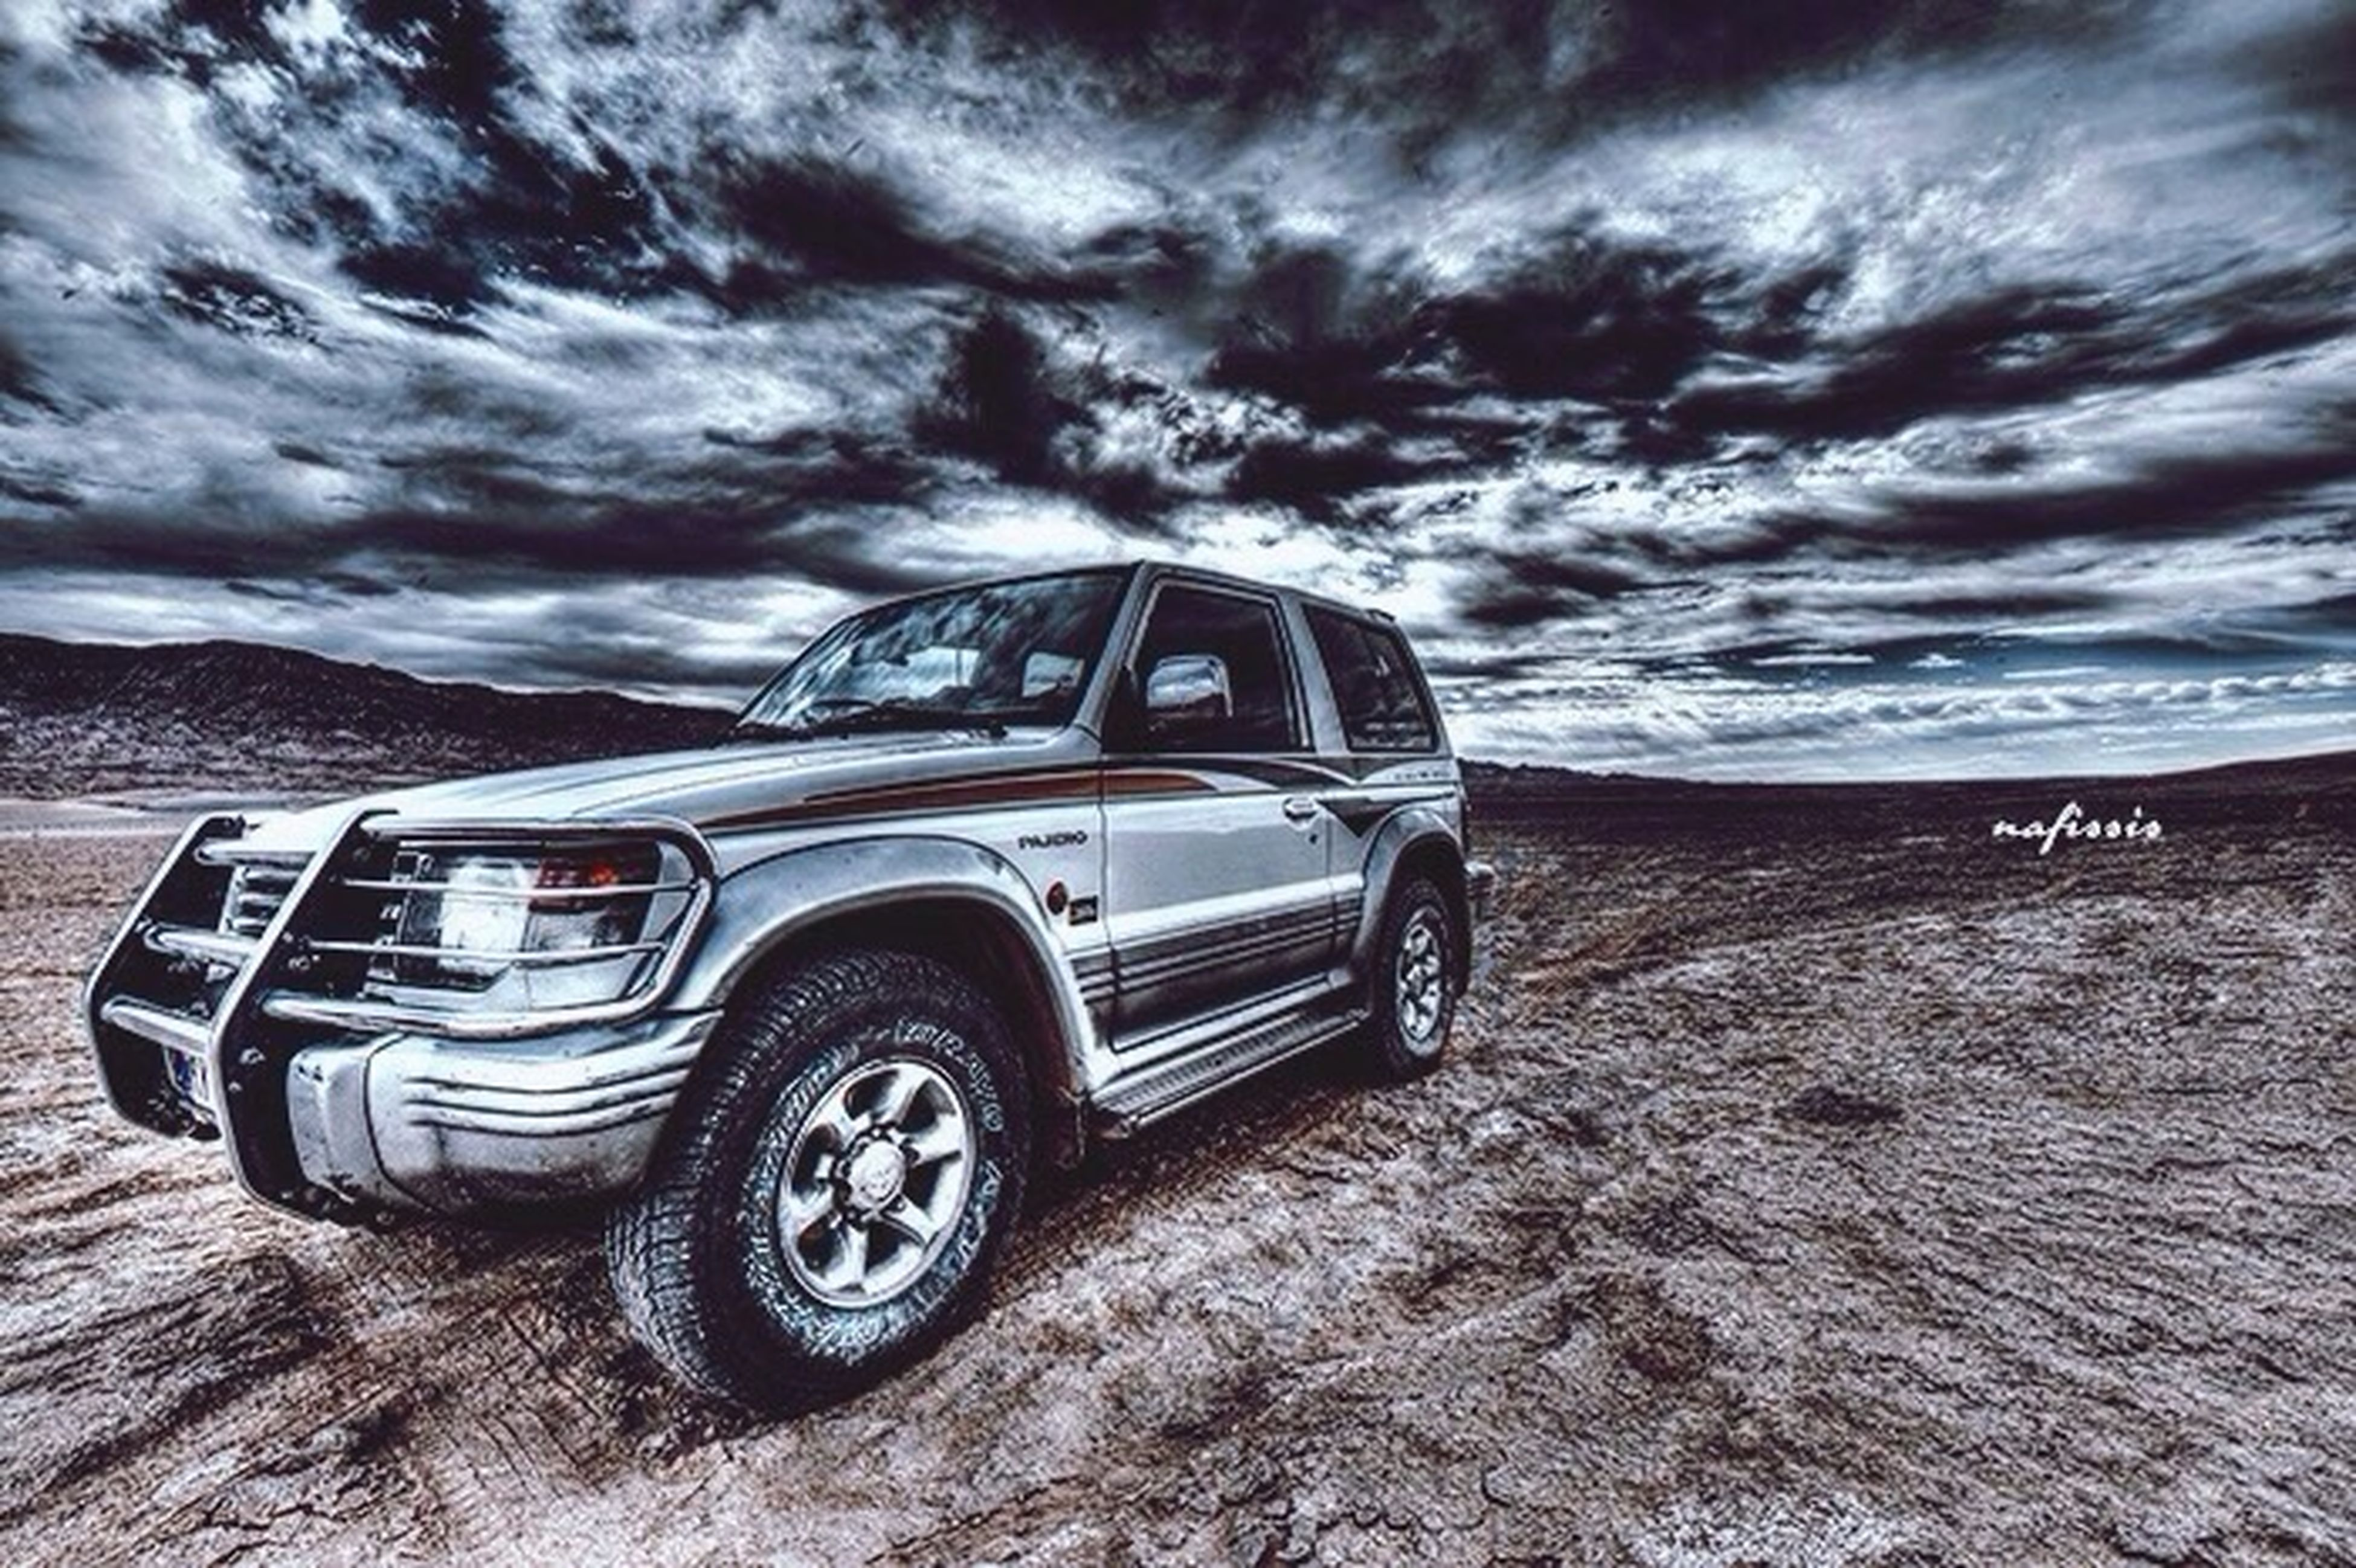 sky, cloud - sky, sand, beach, cloudy, transportation, land vehicle, mode of transport, cloud, sea, shore, tranquility, nature, outdoors, car, day, tranquil scene, scenics, no people, beauty in nature